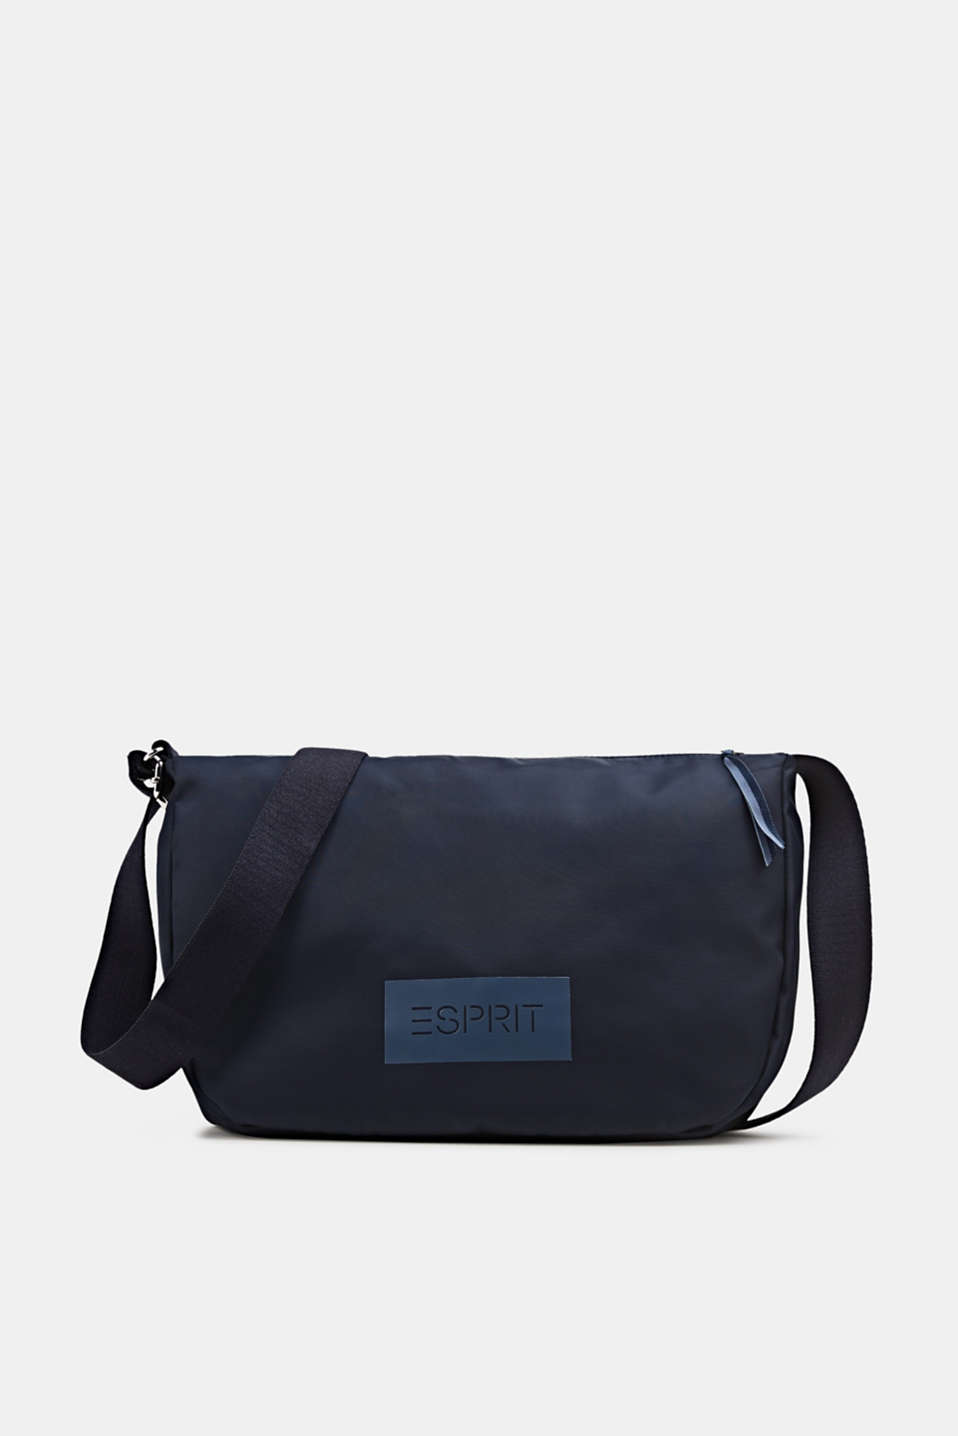 Esprit - Logo shoulder bag made of nylon